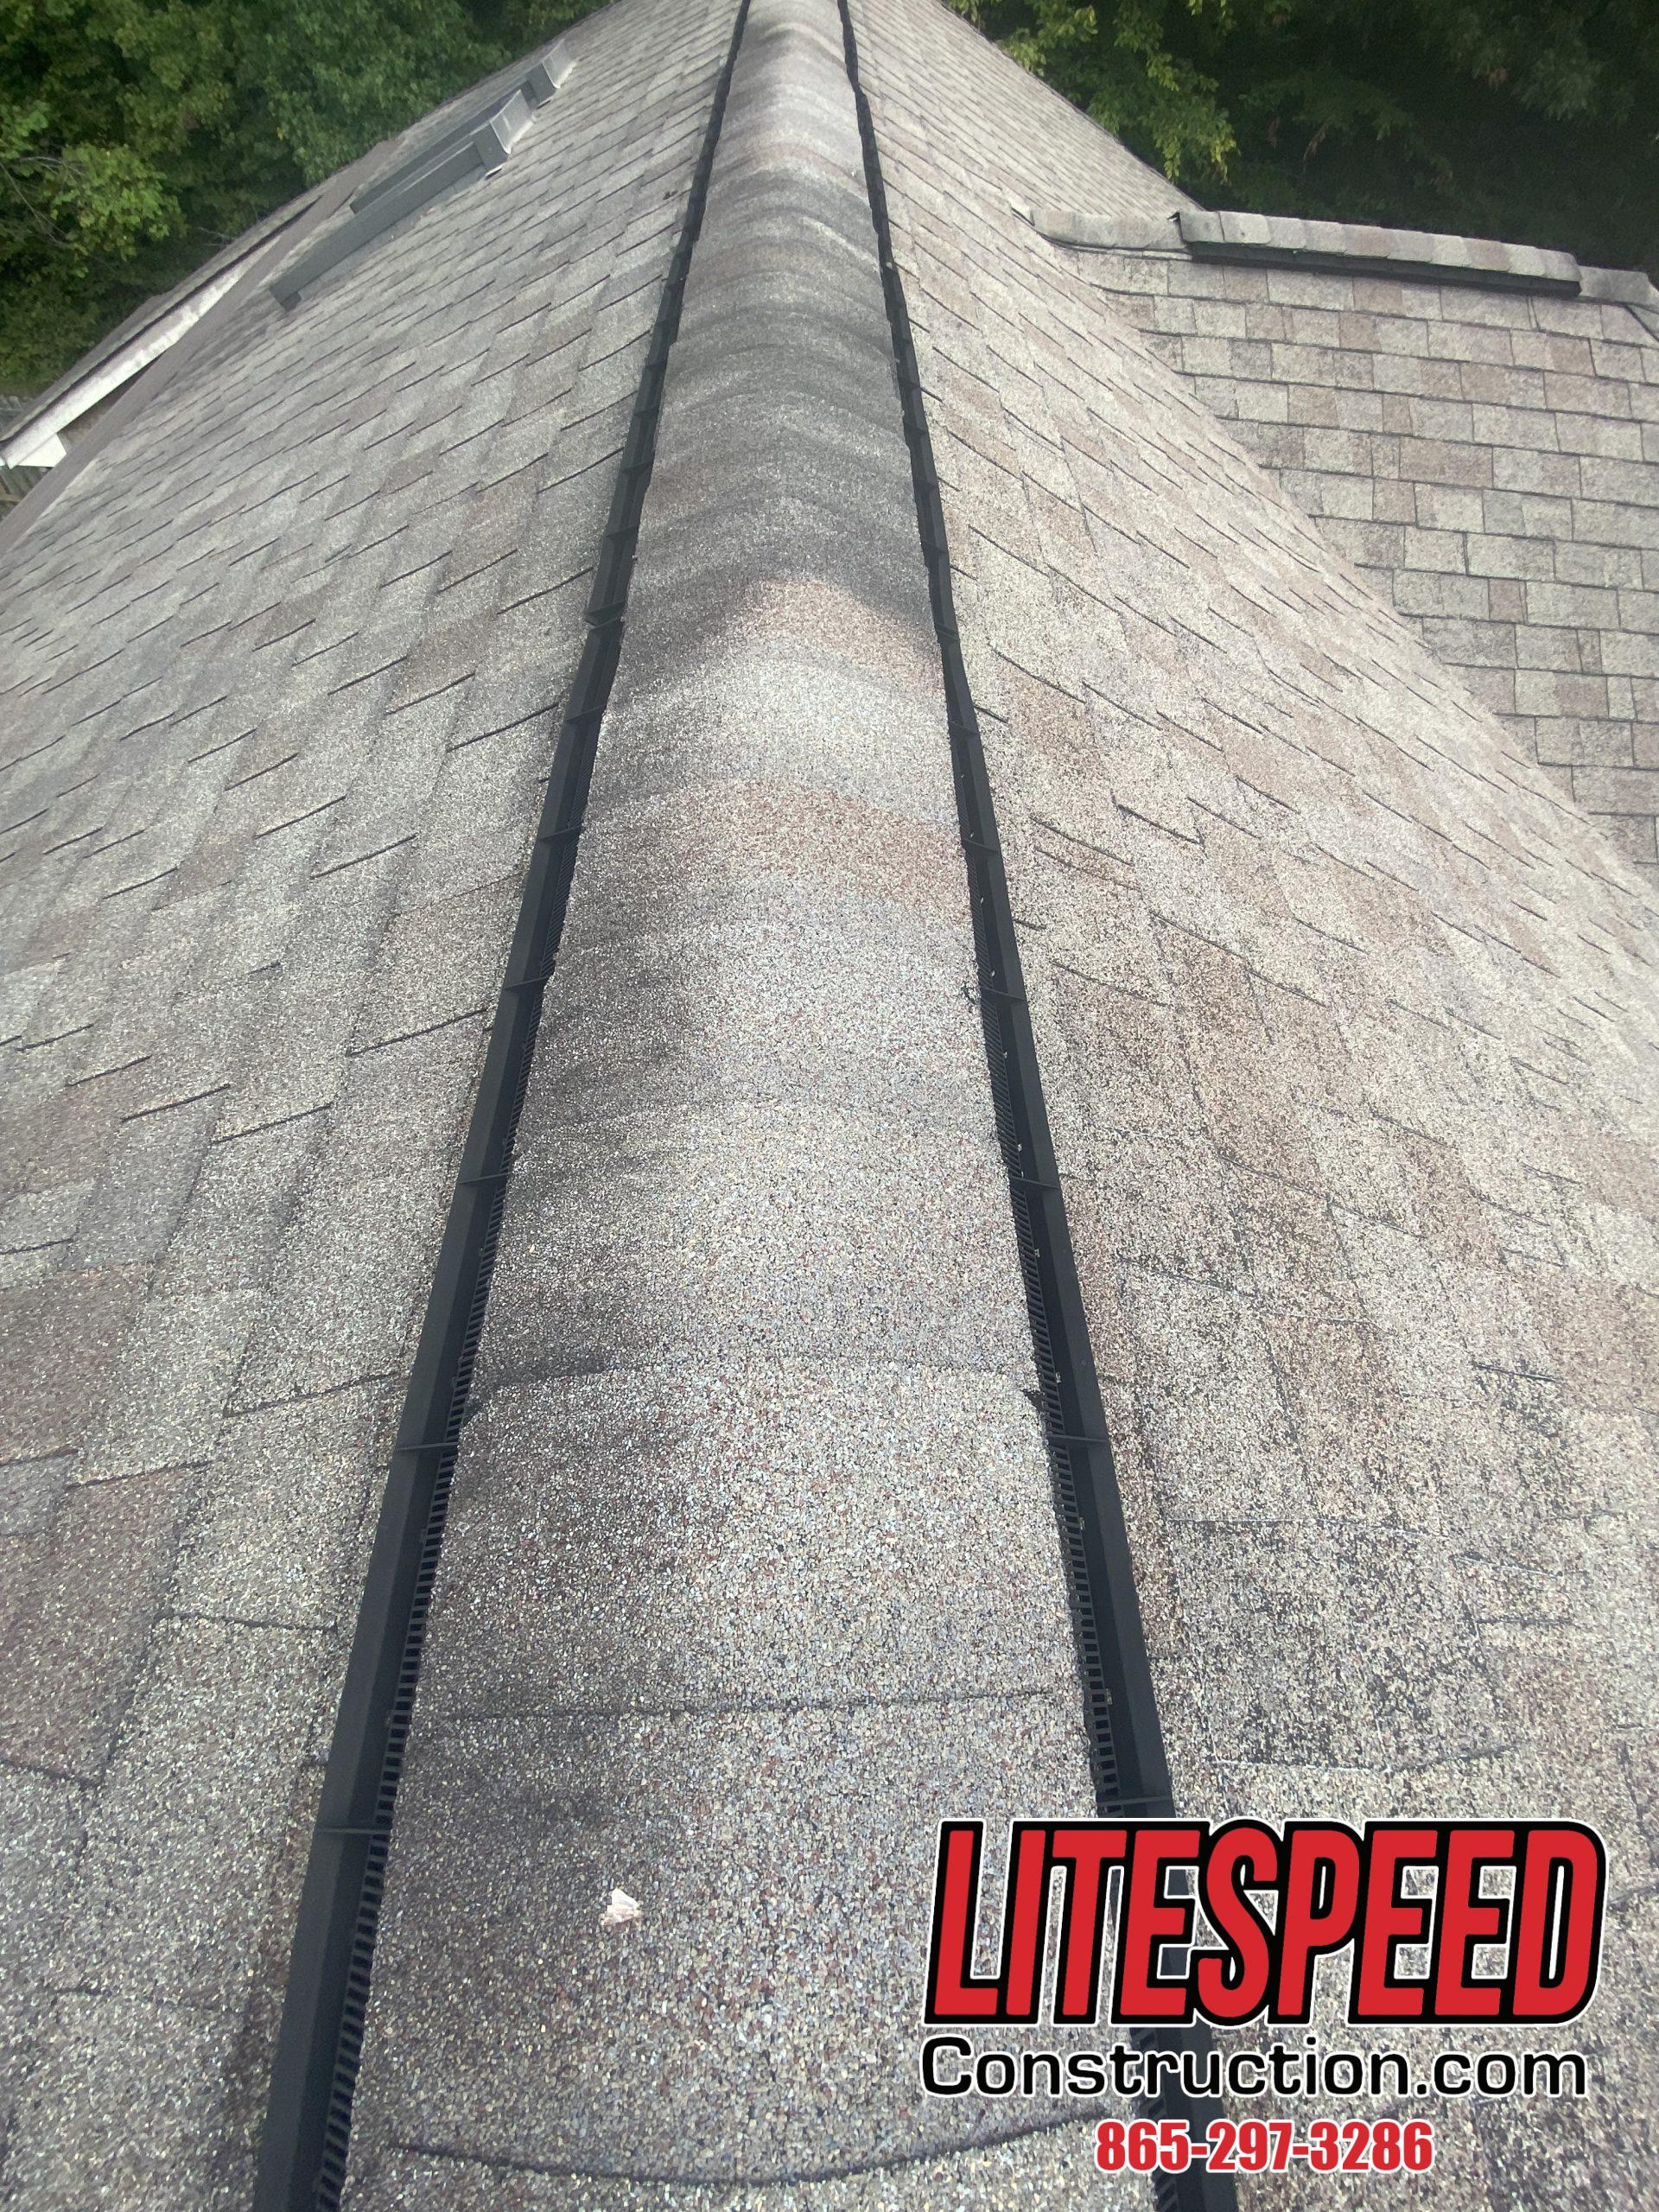 This is a picture of a black plastic ridge vent with shingles over the top